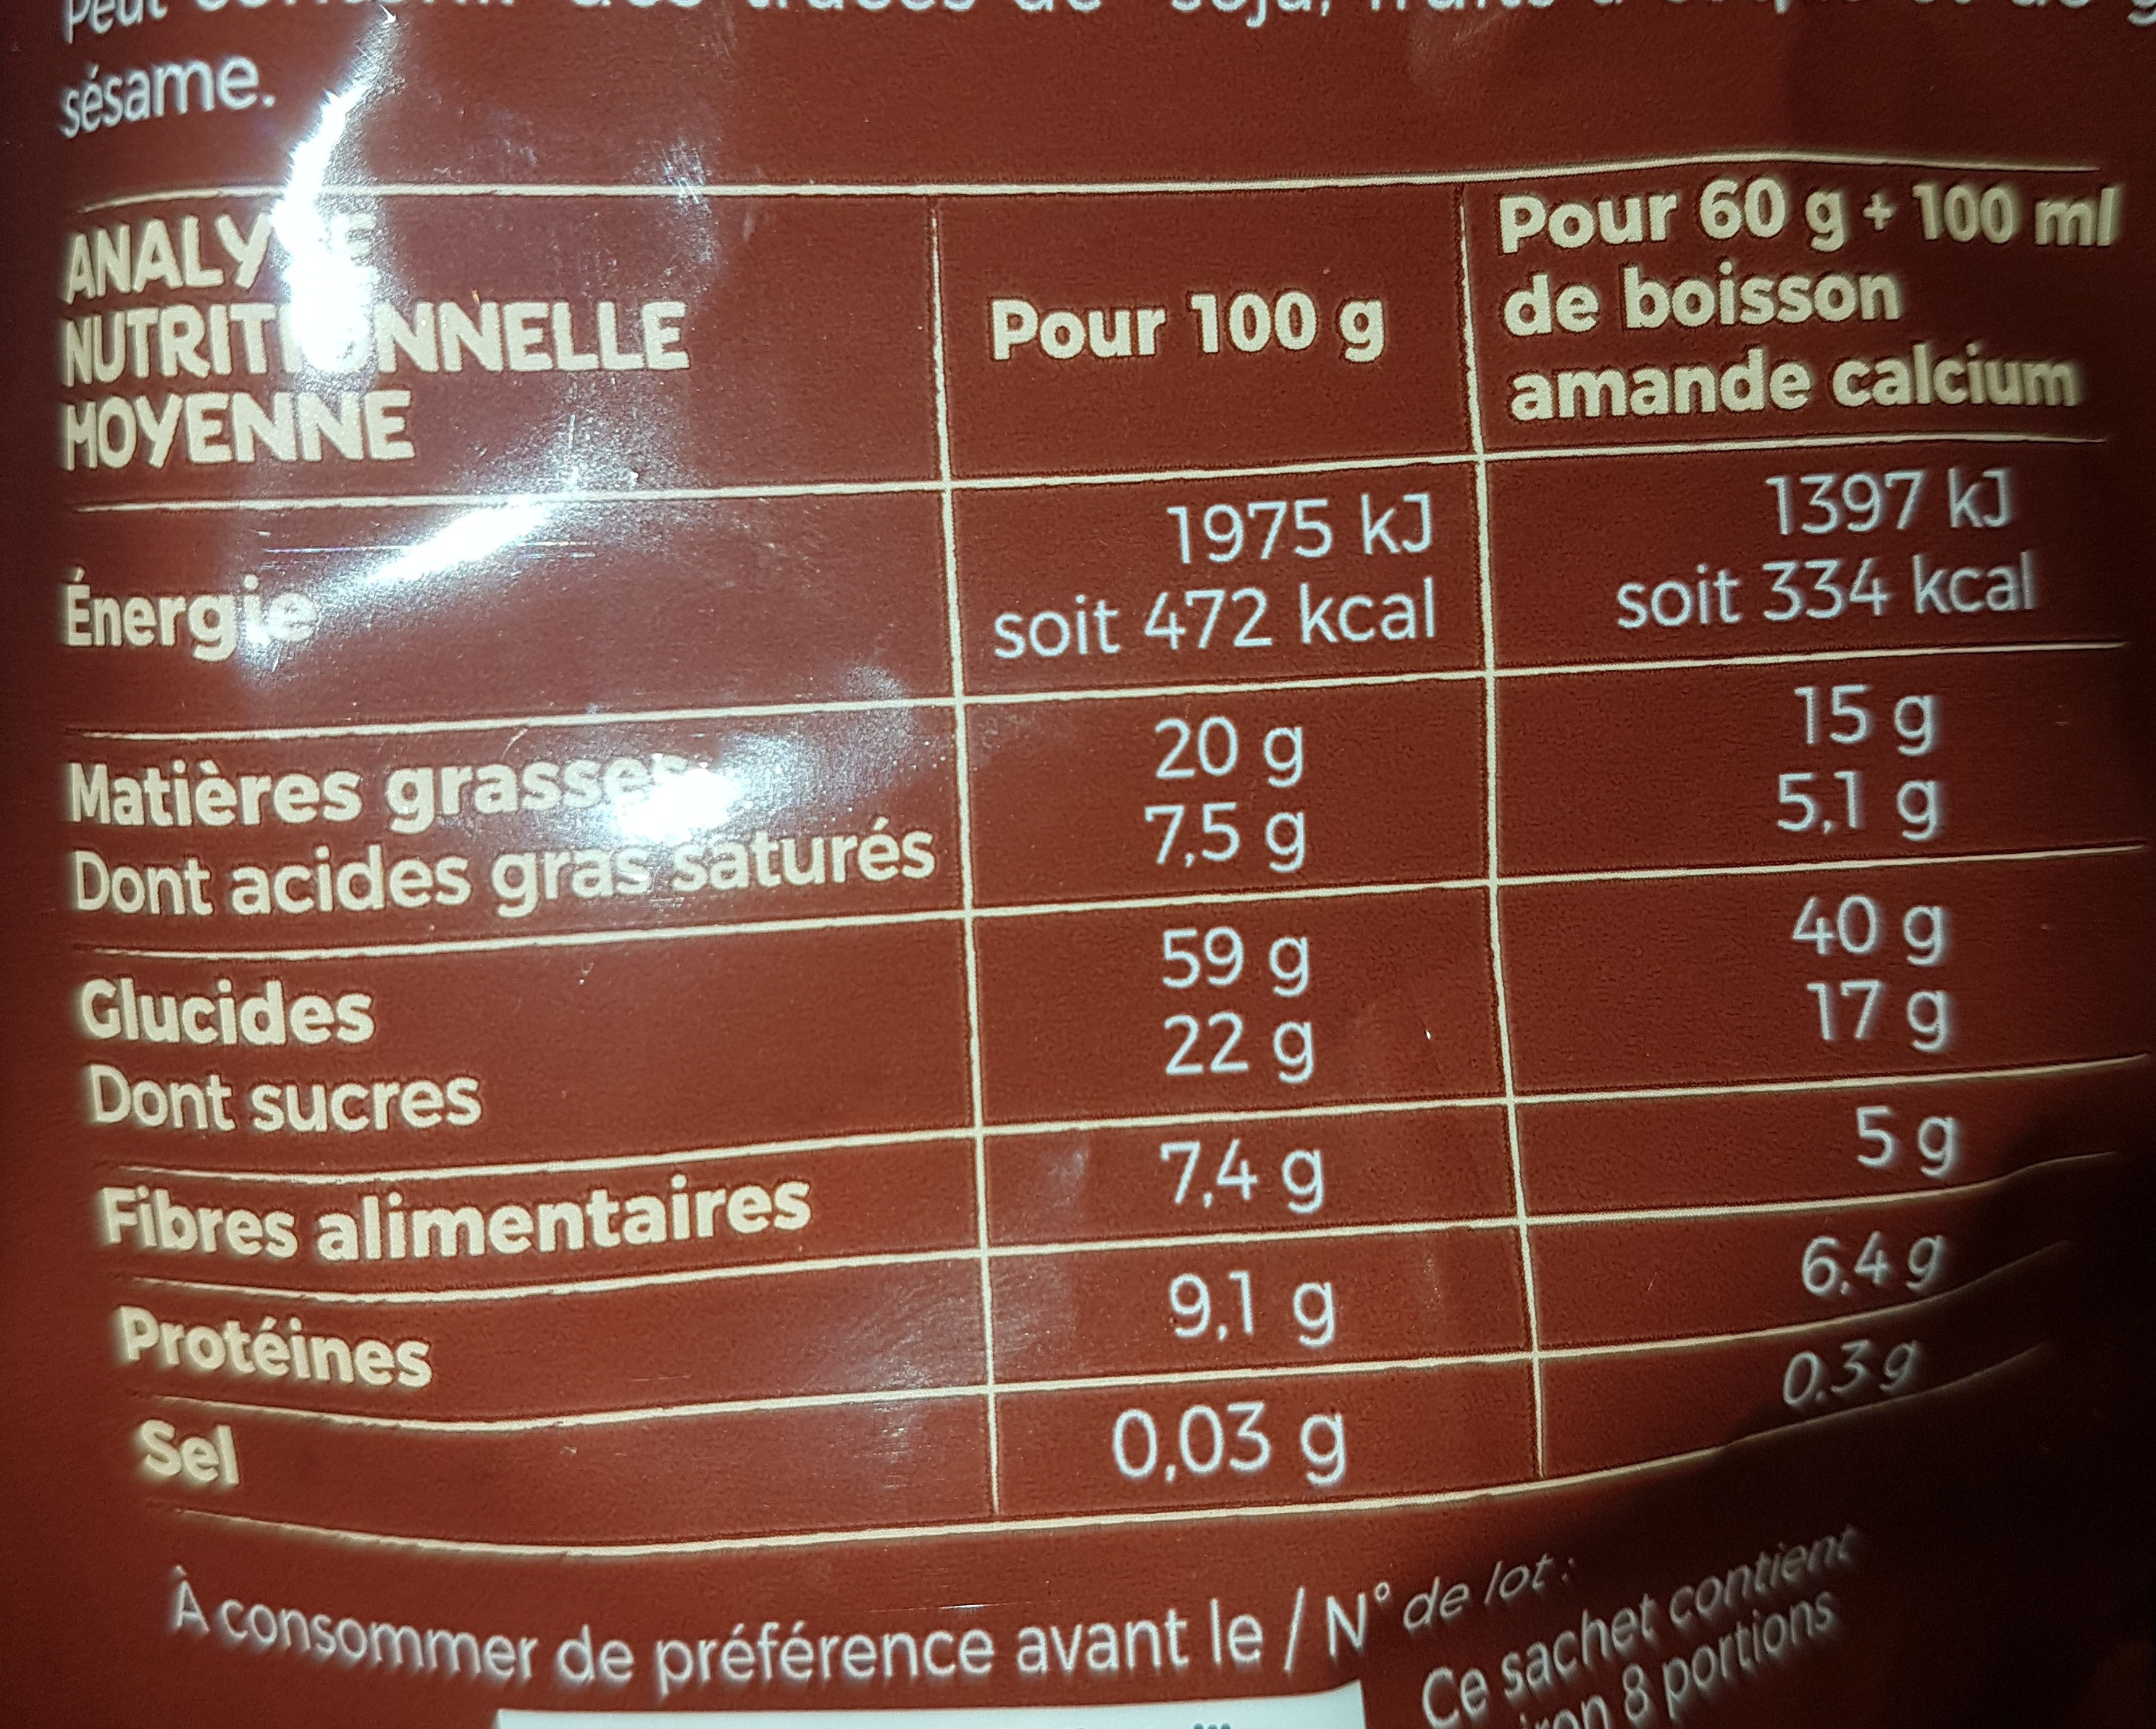 Crunchy intense 2 chocolats - Nutrition facts